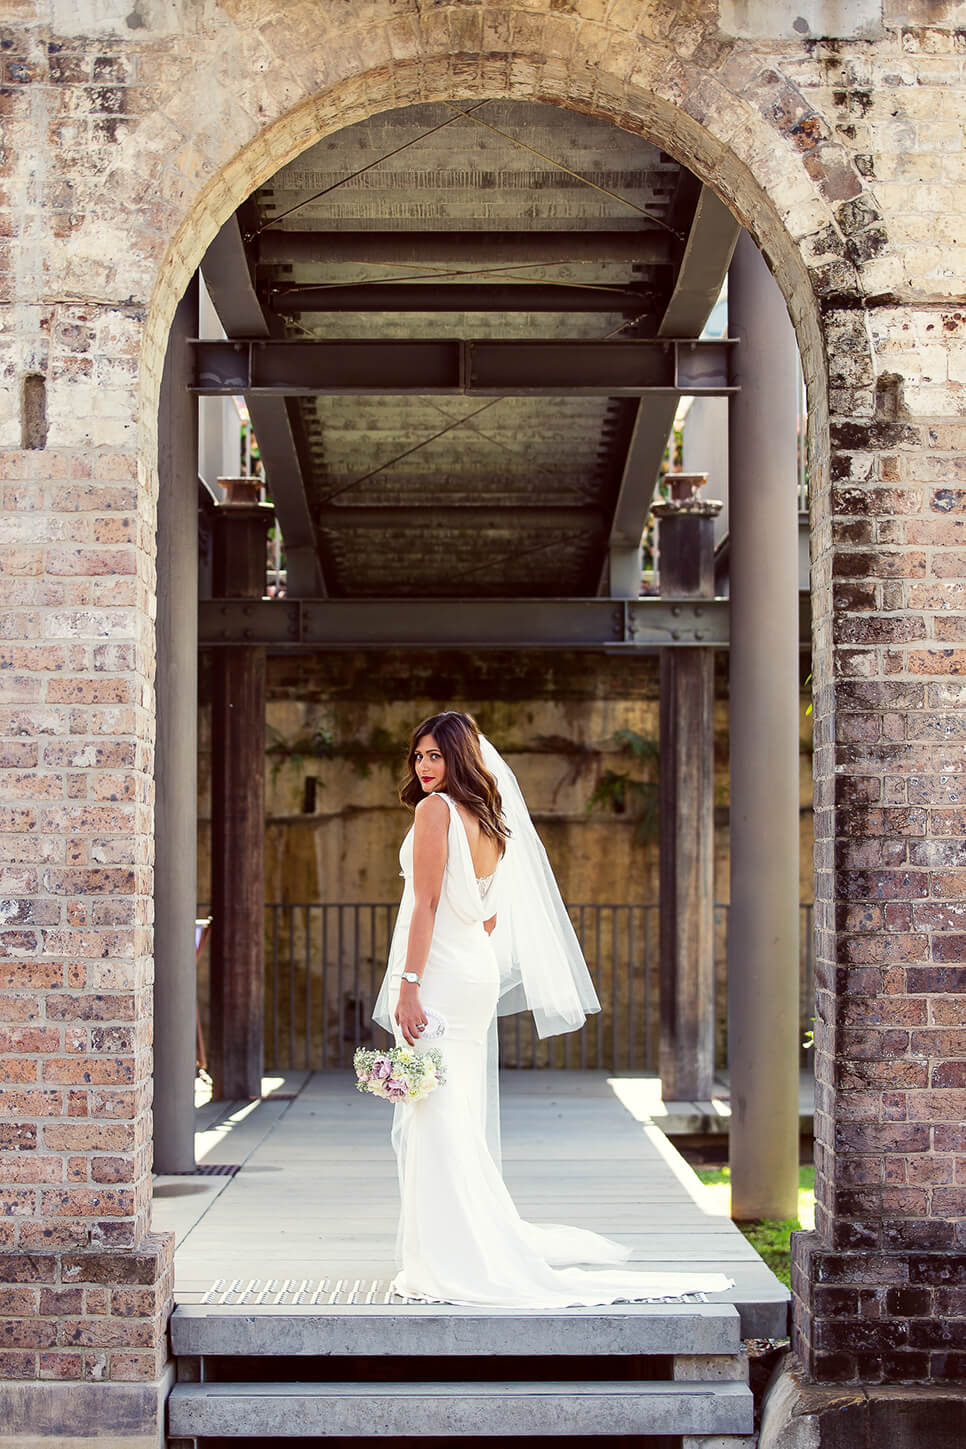 Bride looking back under archway holding flowers